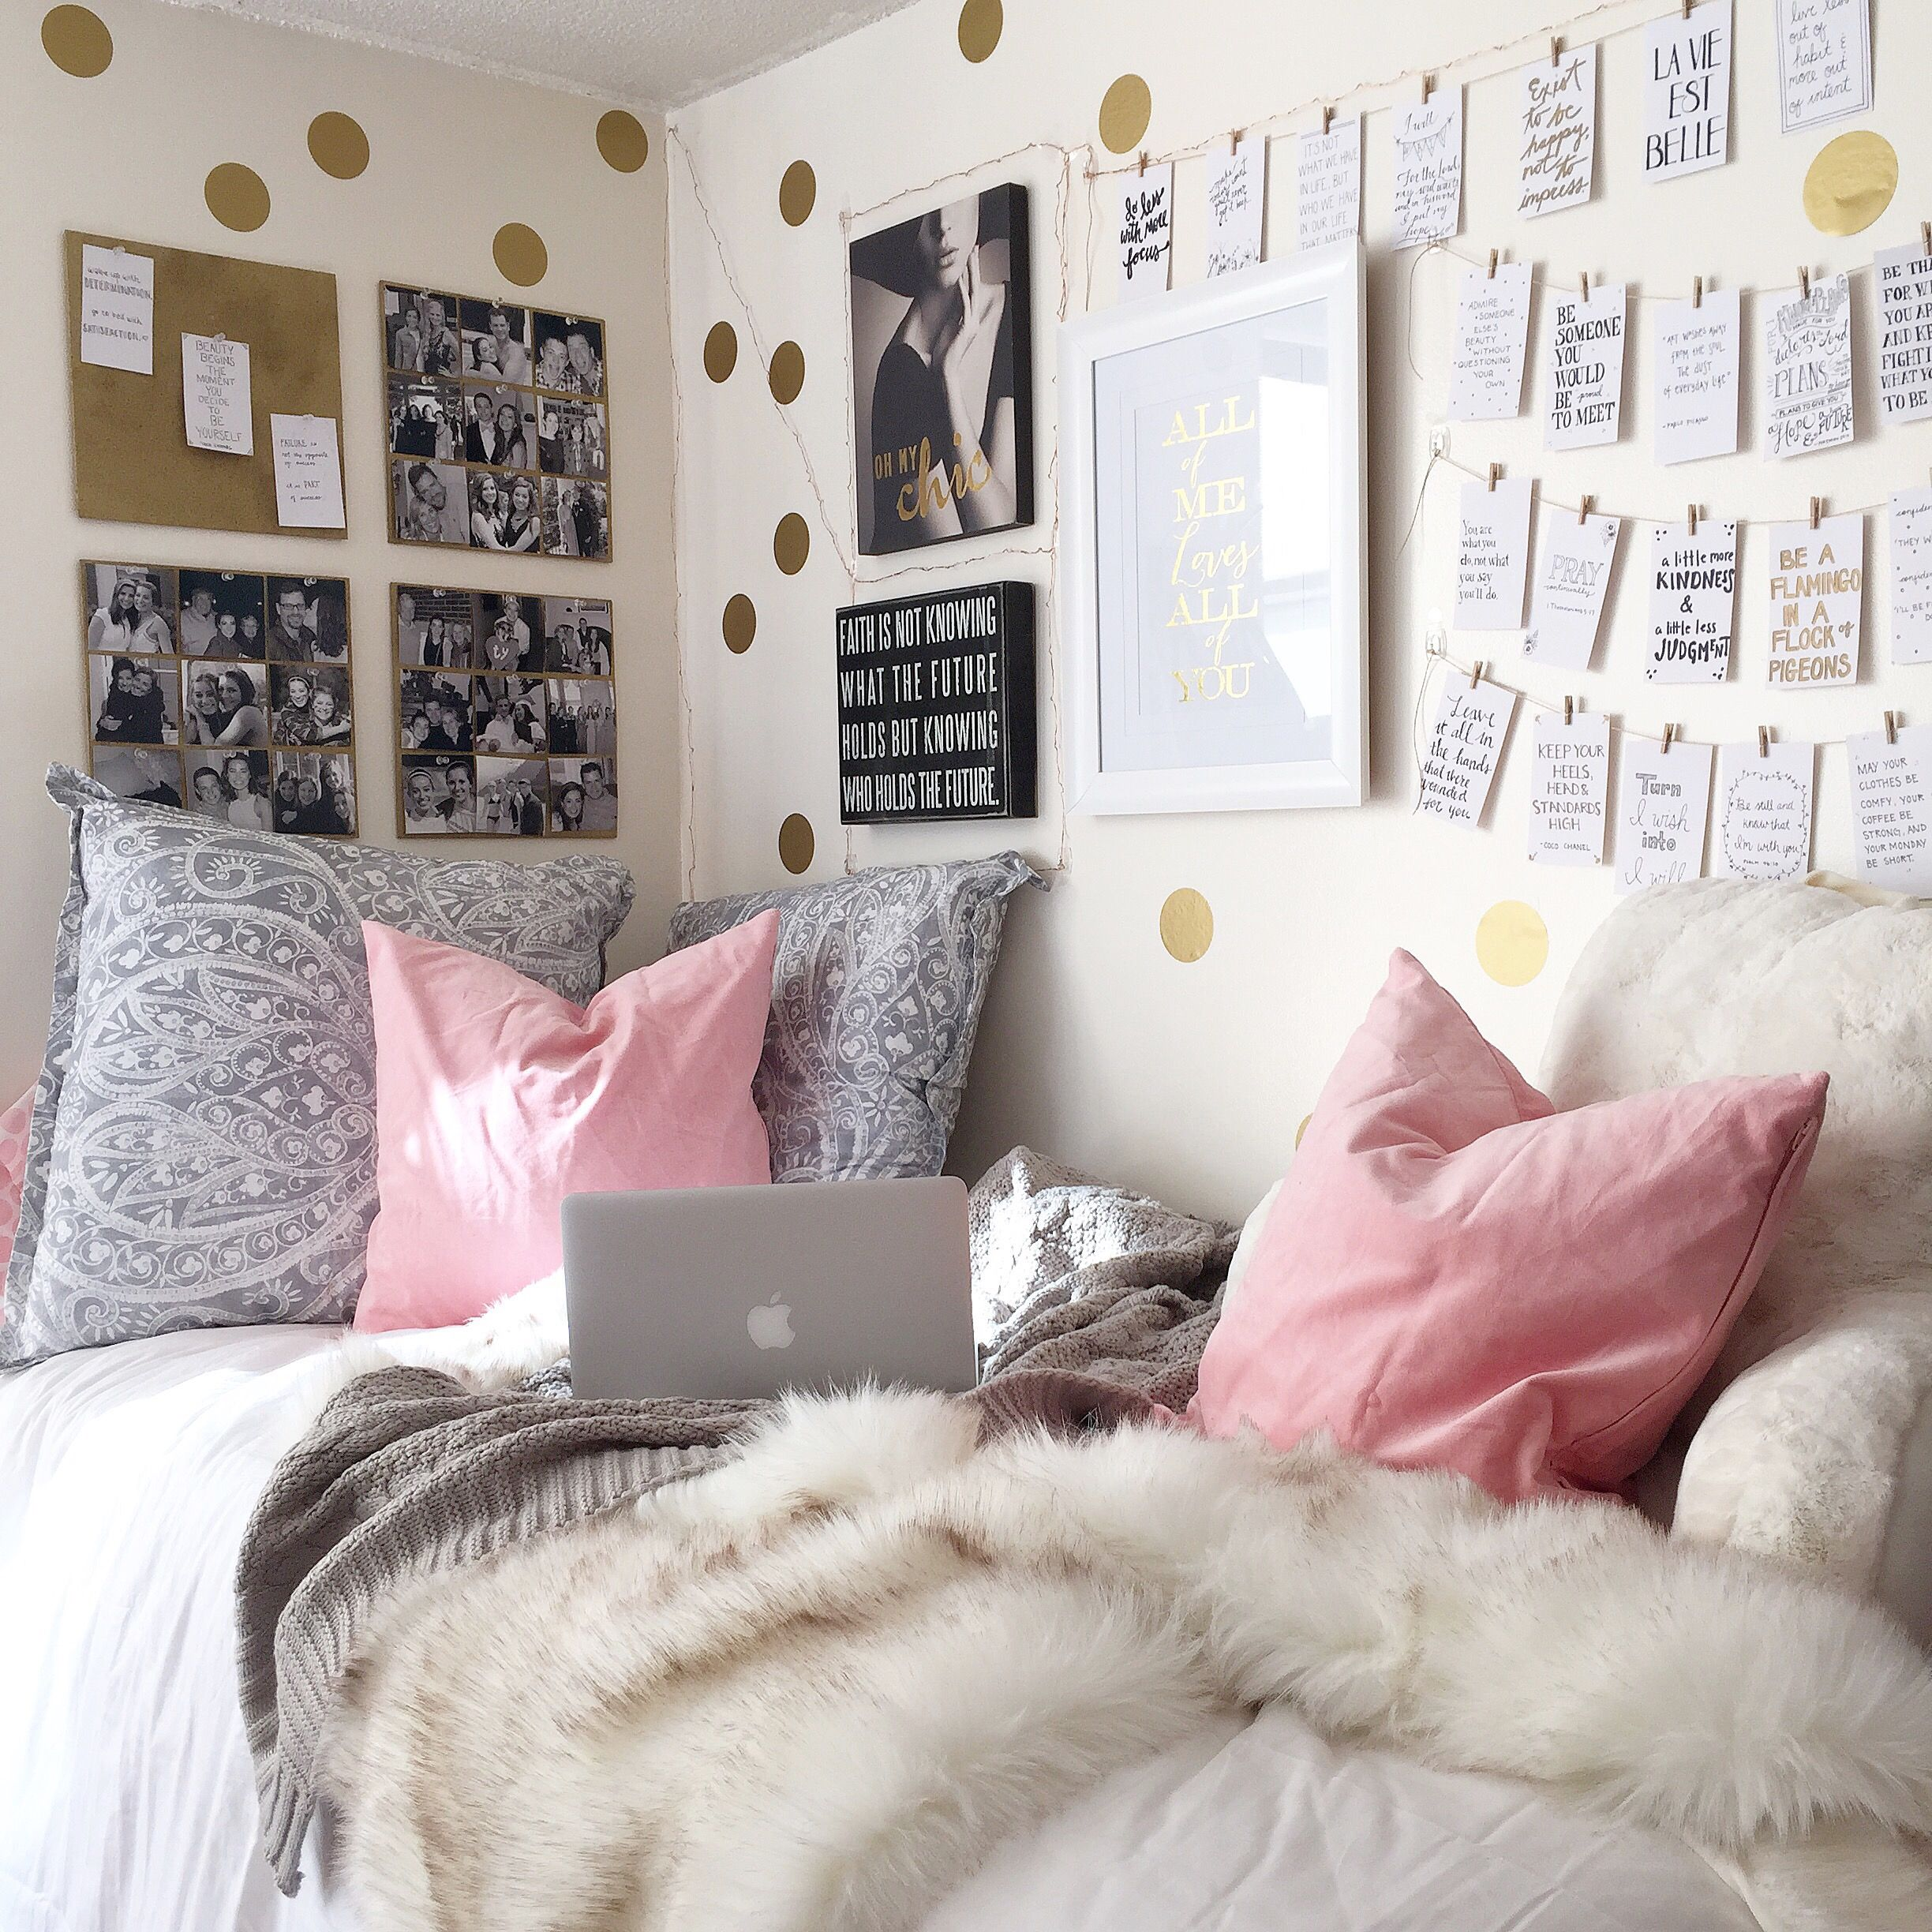 Dorm Room Design Ideas image of dorm room decorating ideas young College Dorm Room Decorations More